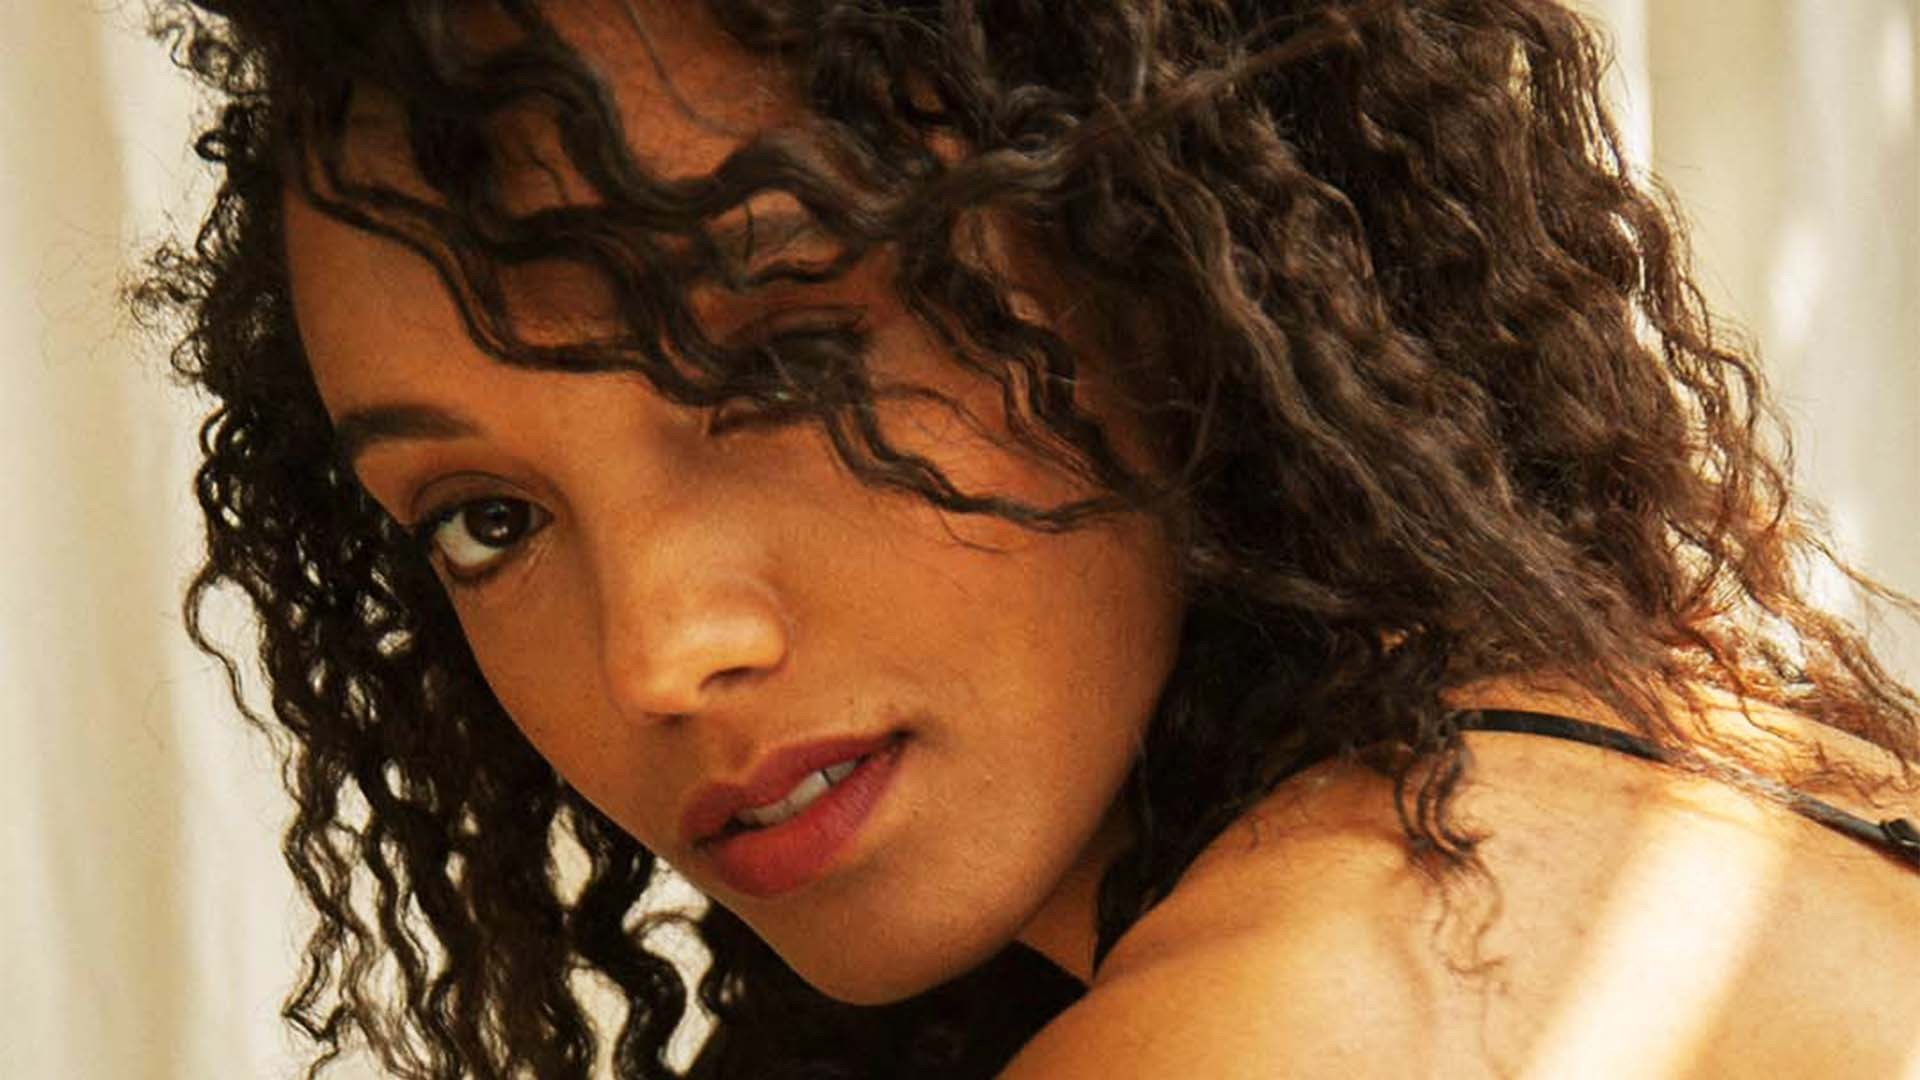 Discussion on this topic: Minerva Pious, maisie-richardson-sellers/